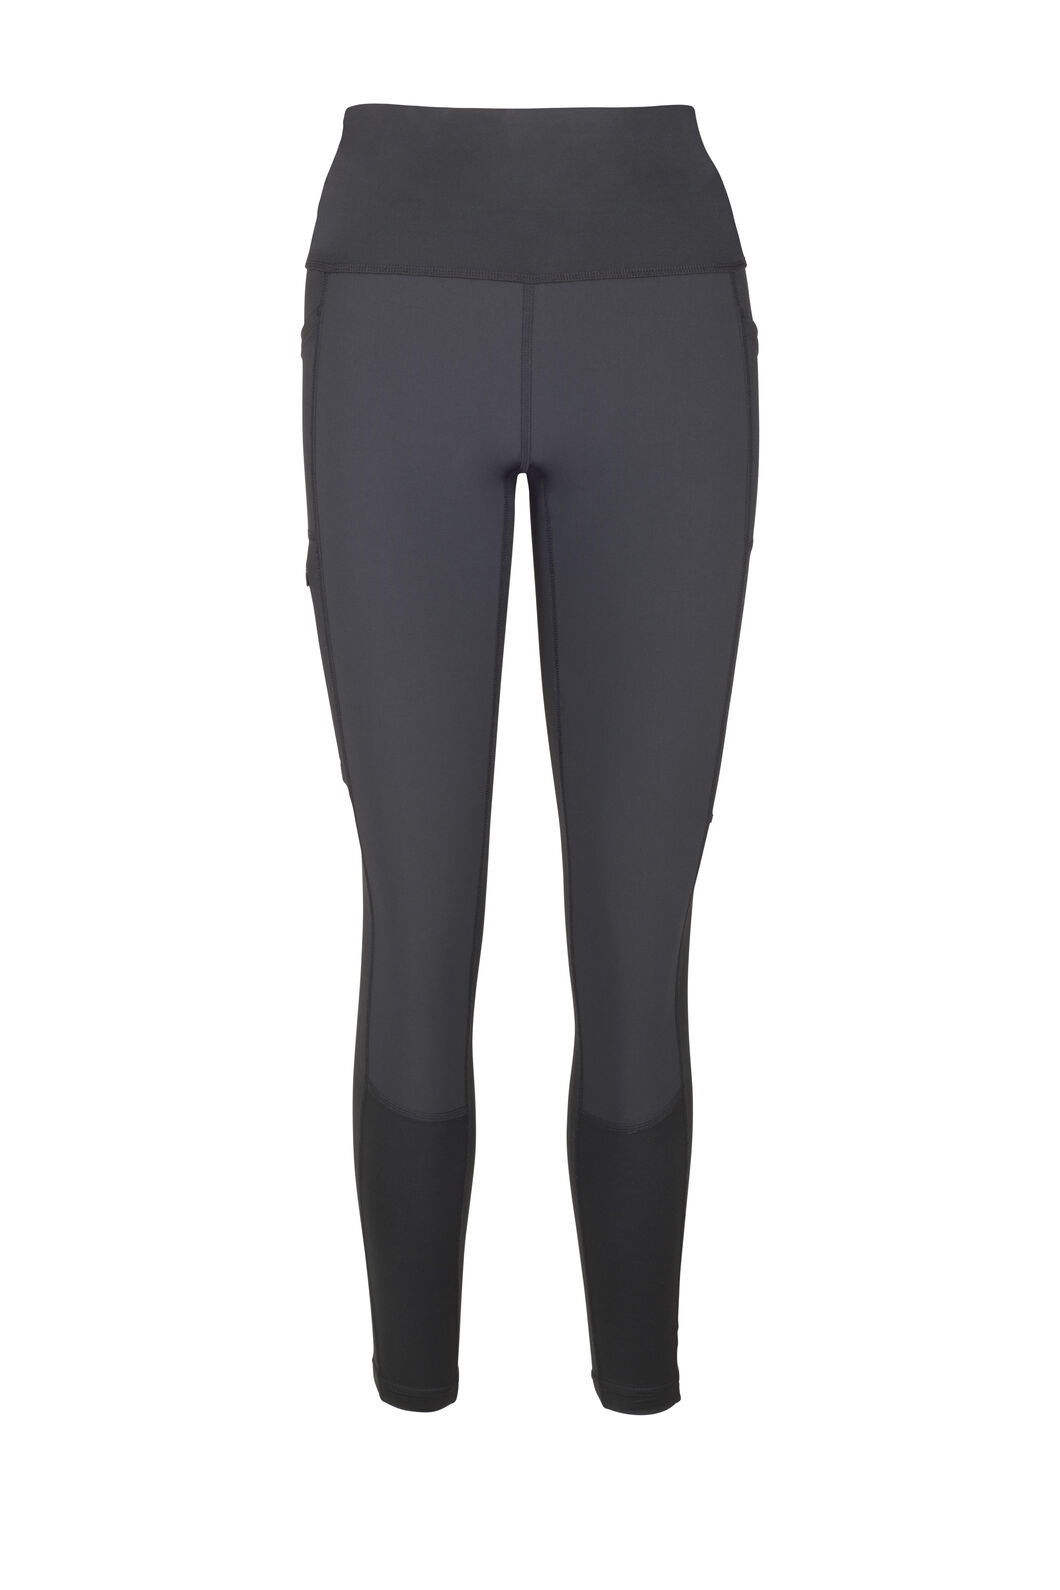 Macpac Women's There and Back Tights, Black, hi-res